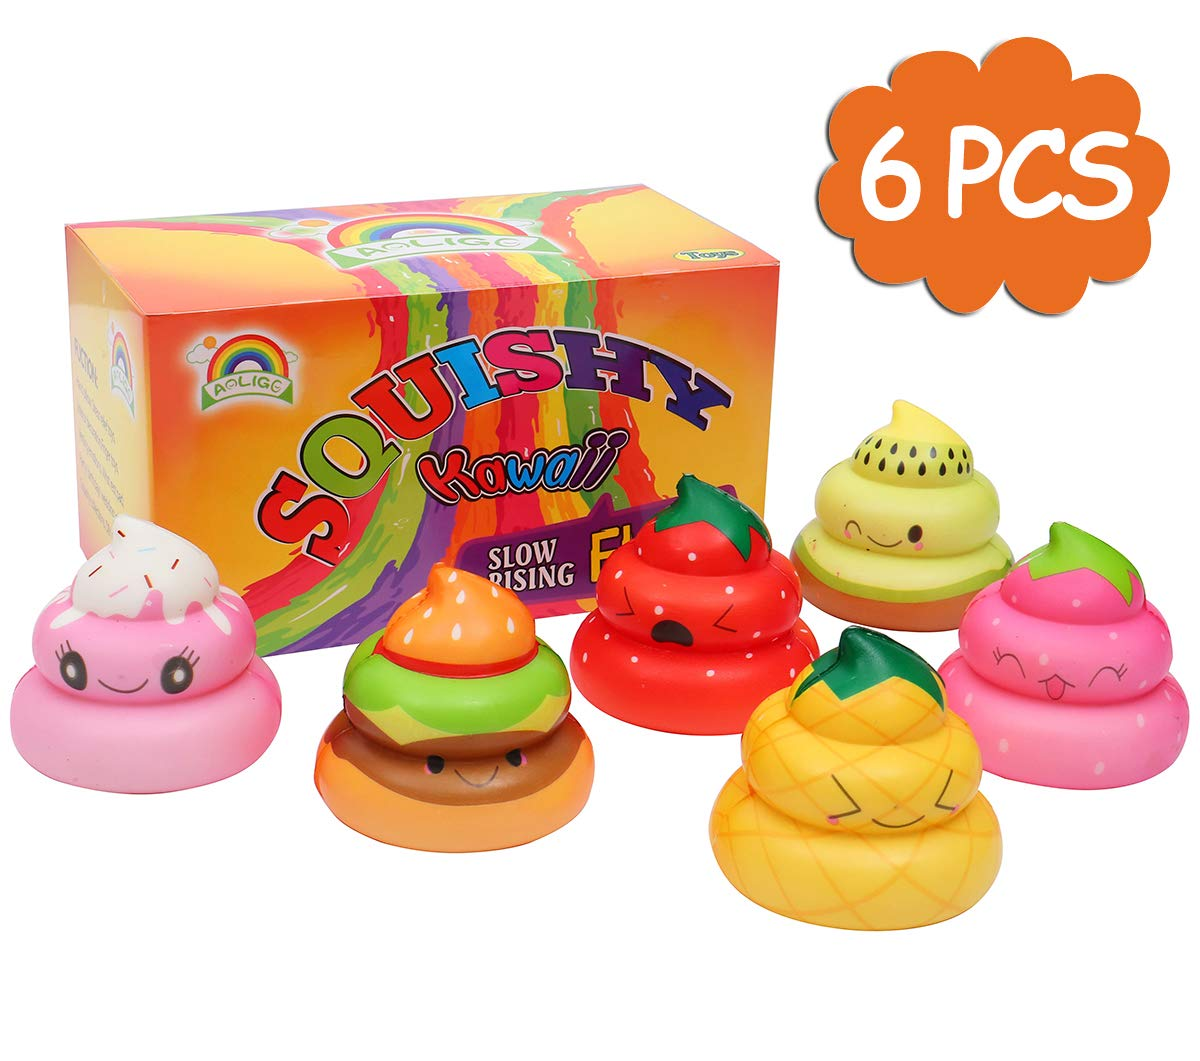 AOLIGE 6PCs Squishies Slow Rising Jumbo Kawaii Cut Poo Creamy Scent for Kids Party Toys Stress Reliever Toy MiaoZhen